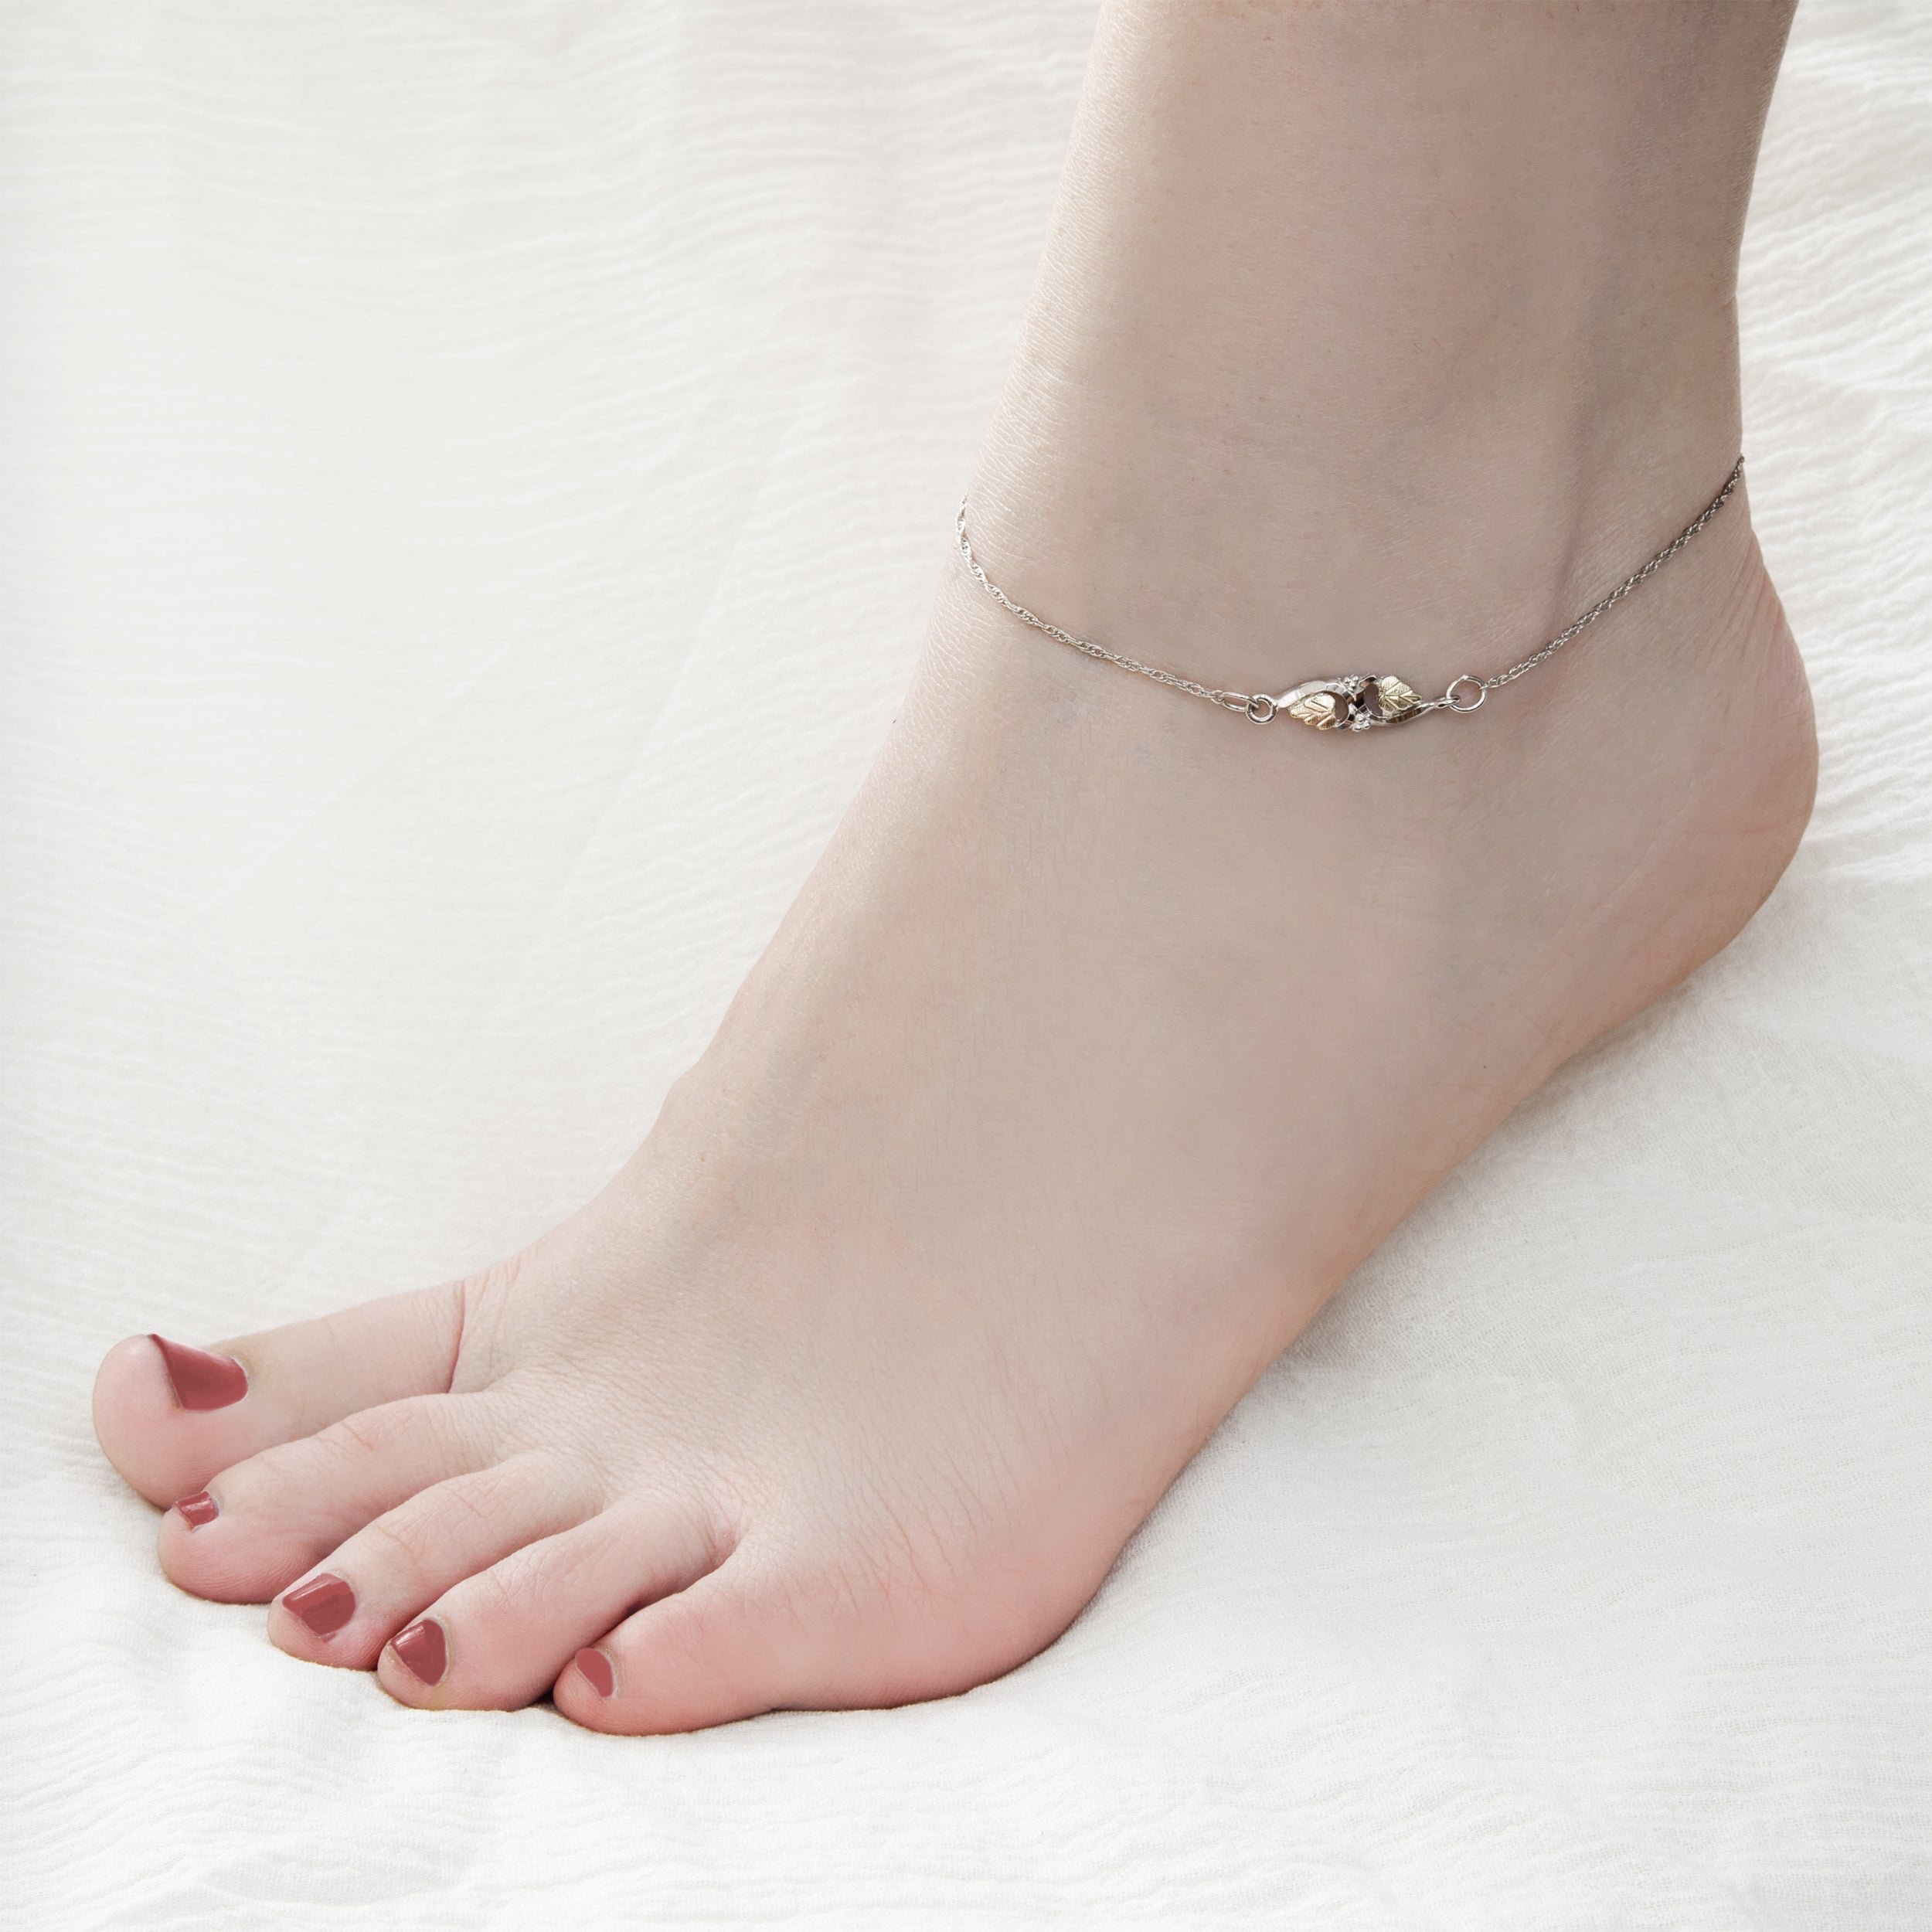 jewelry gold link inch amazon dp karat yellow com figaro anklet